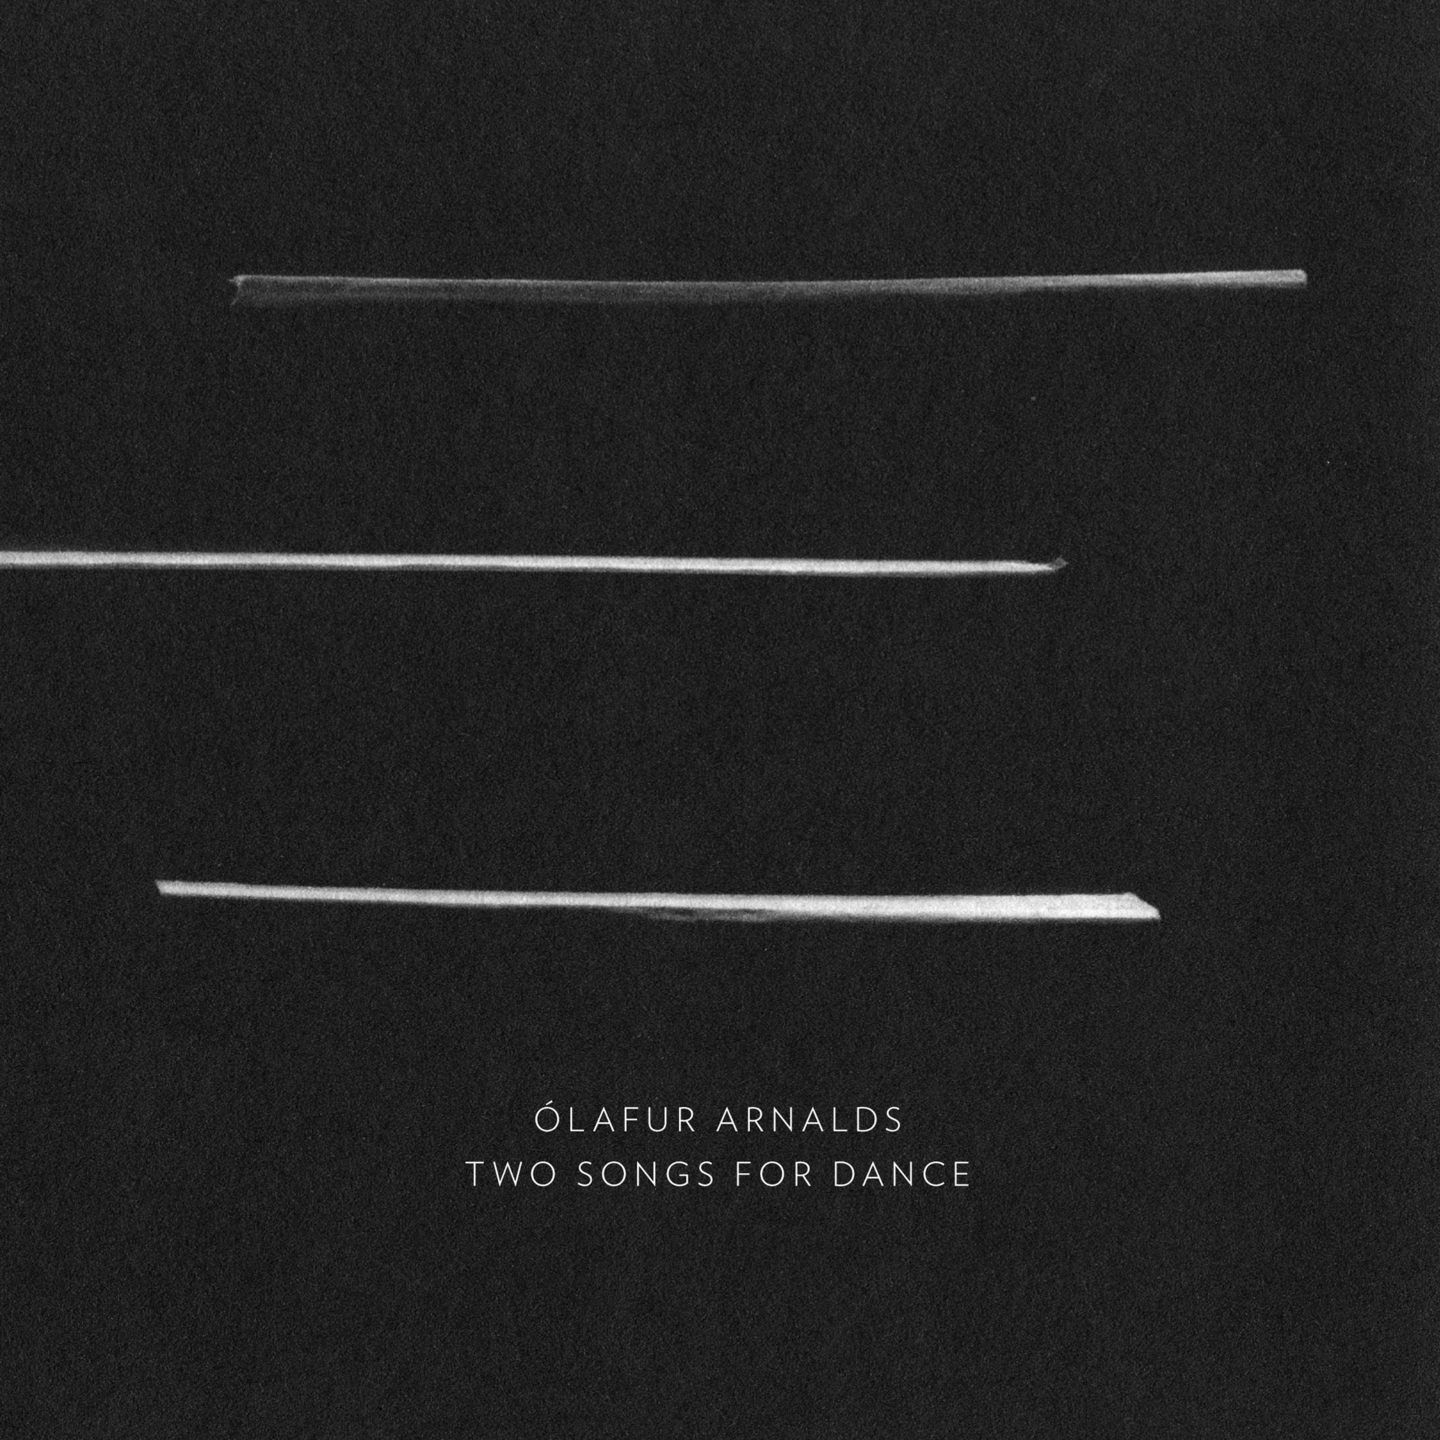 two songs for dance by Ólafur arnalds releases erased tapes